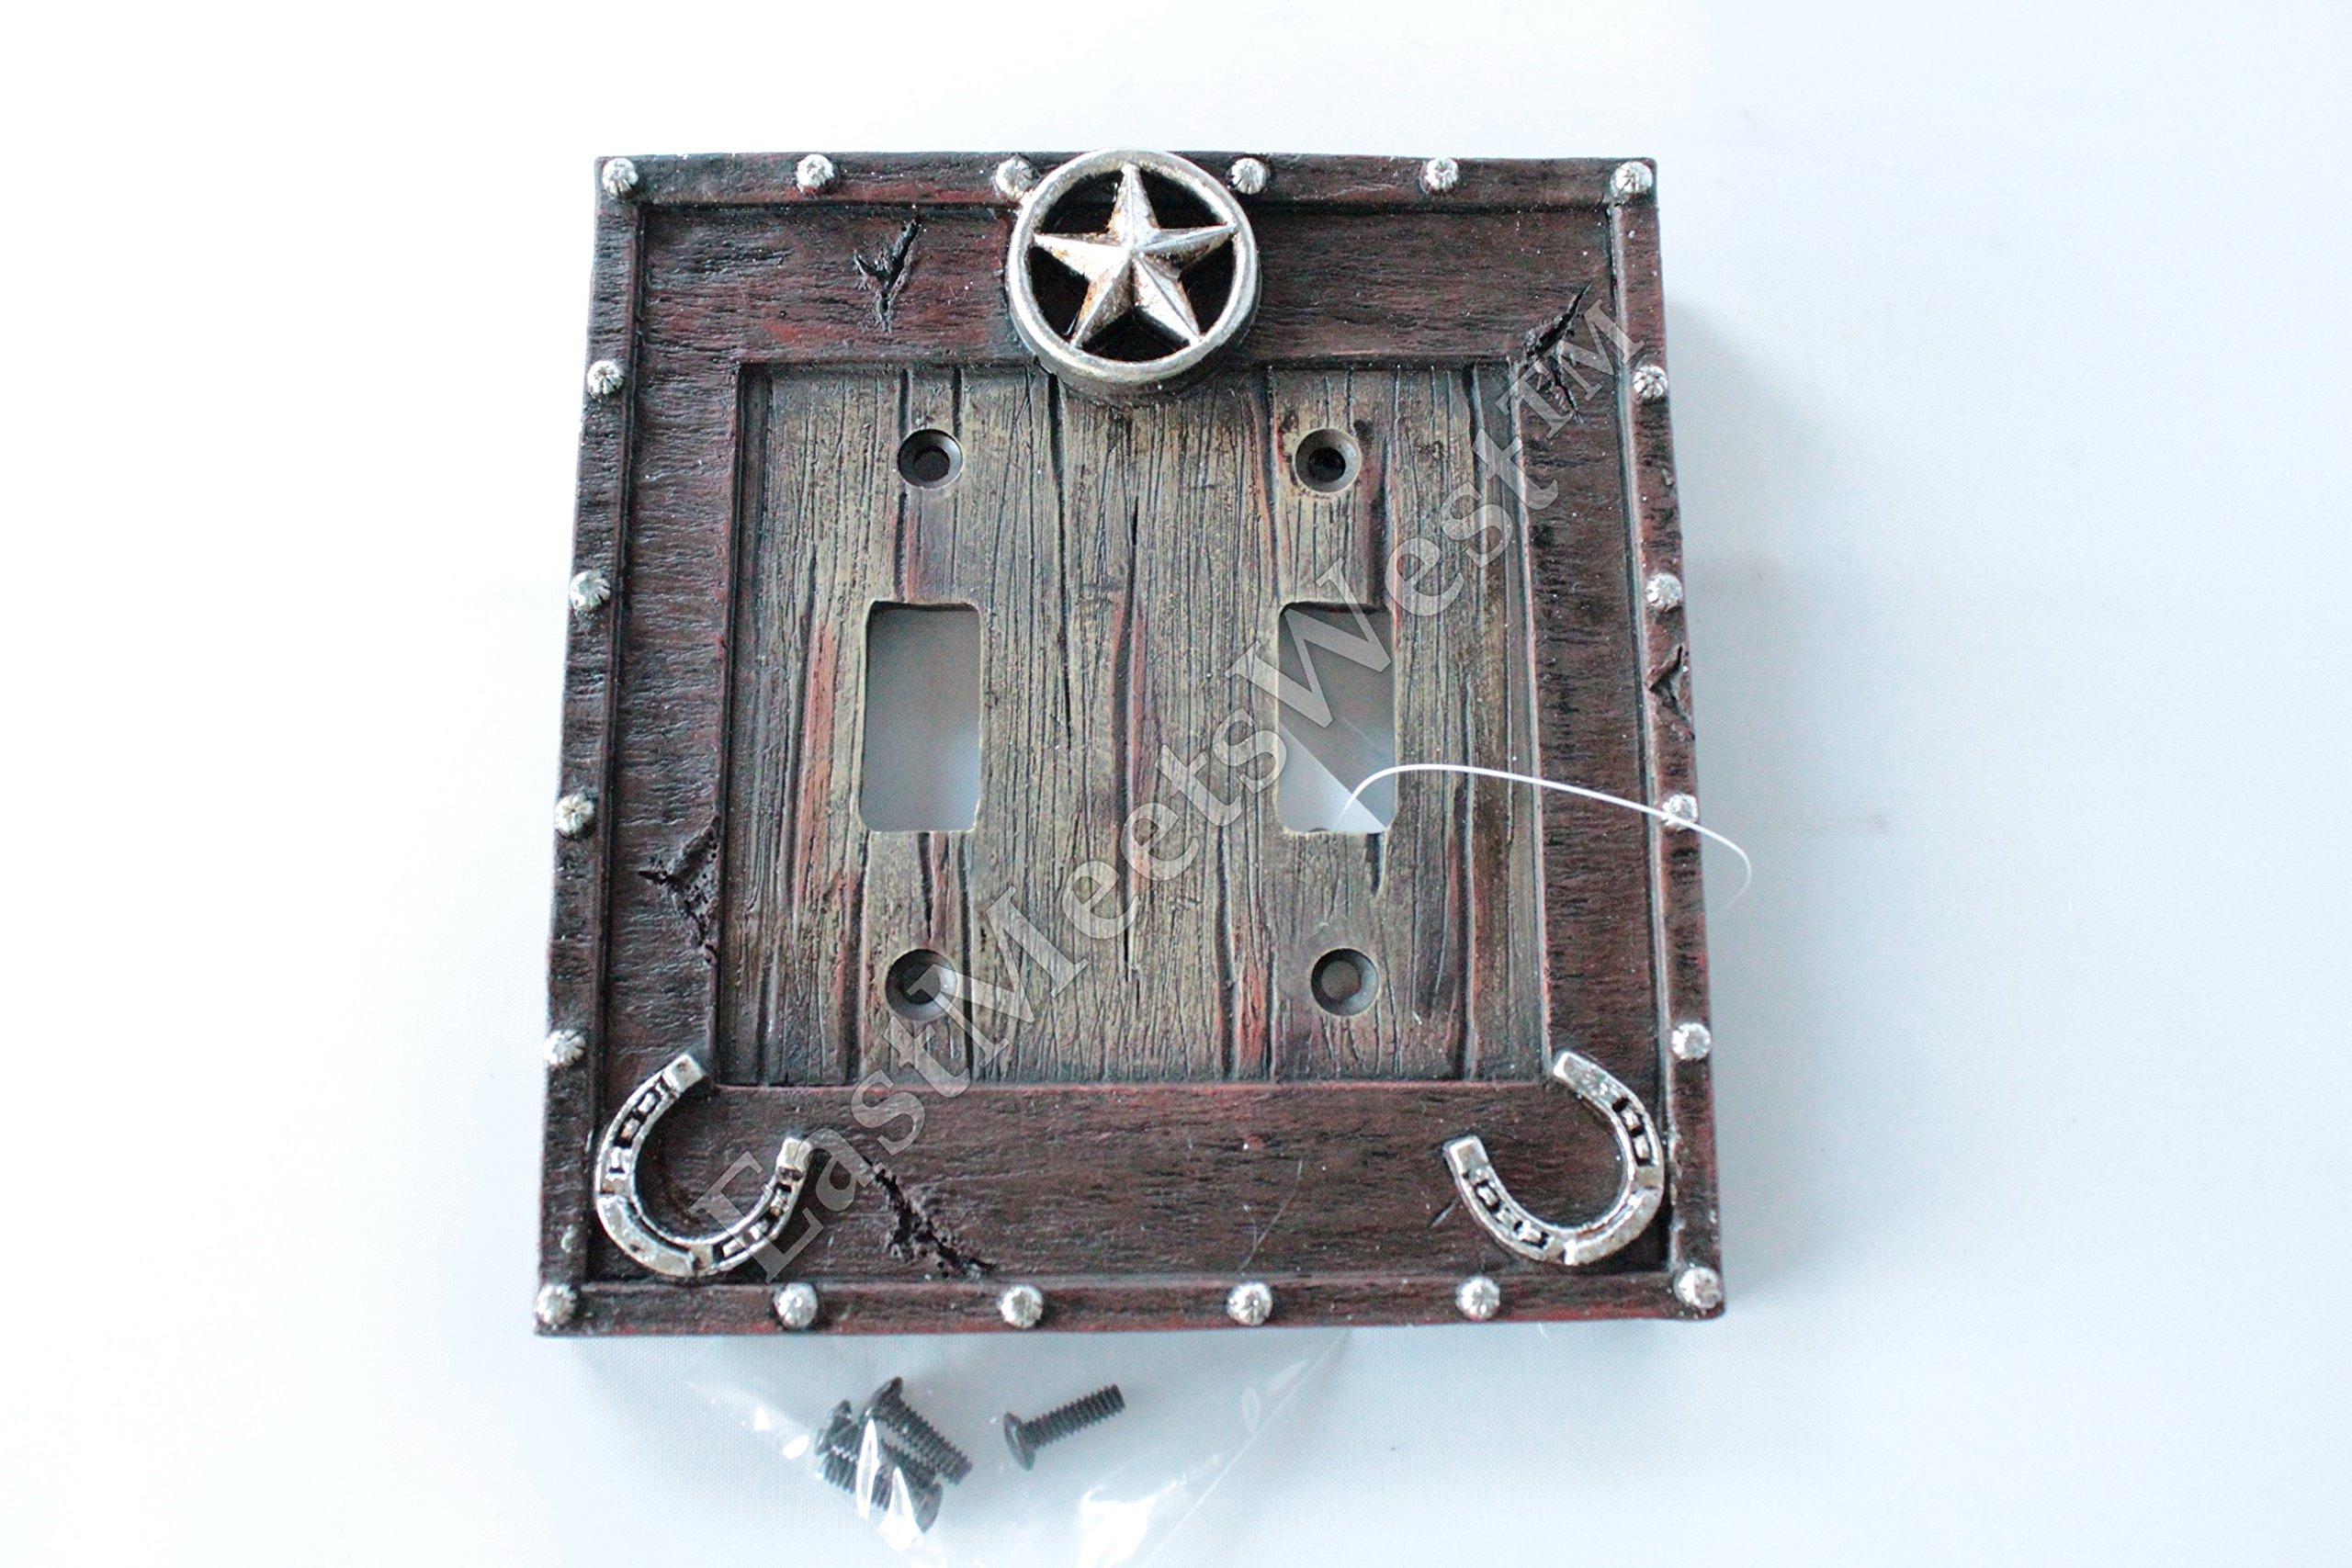 Western Cowboy Rustic Star Horseshoe Switch Plate Covers Electric Rustic Wood Look Western Decor (Double Switch)